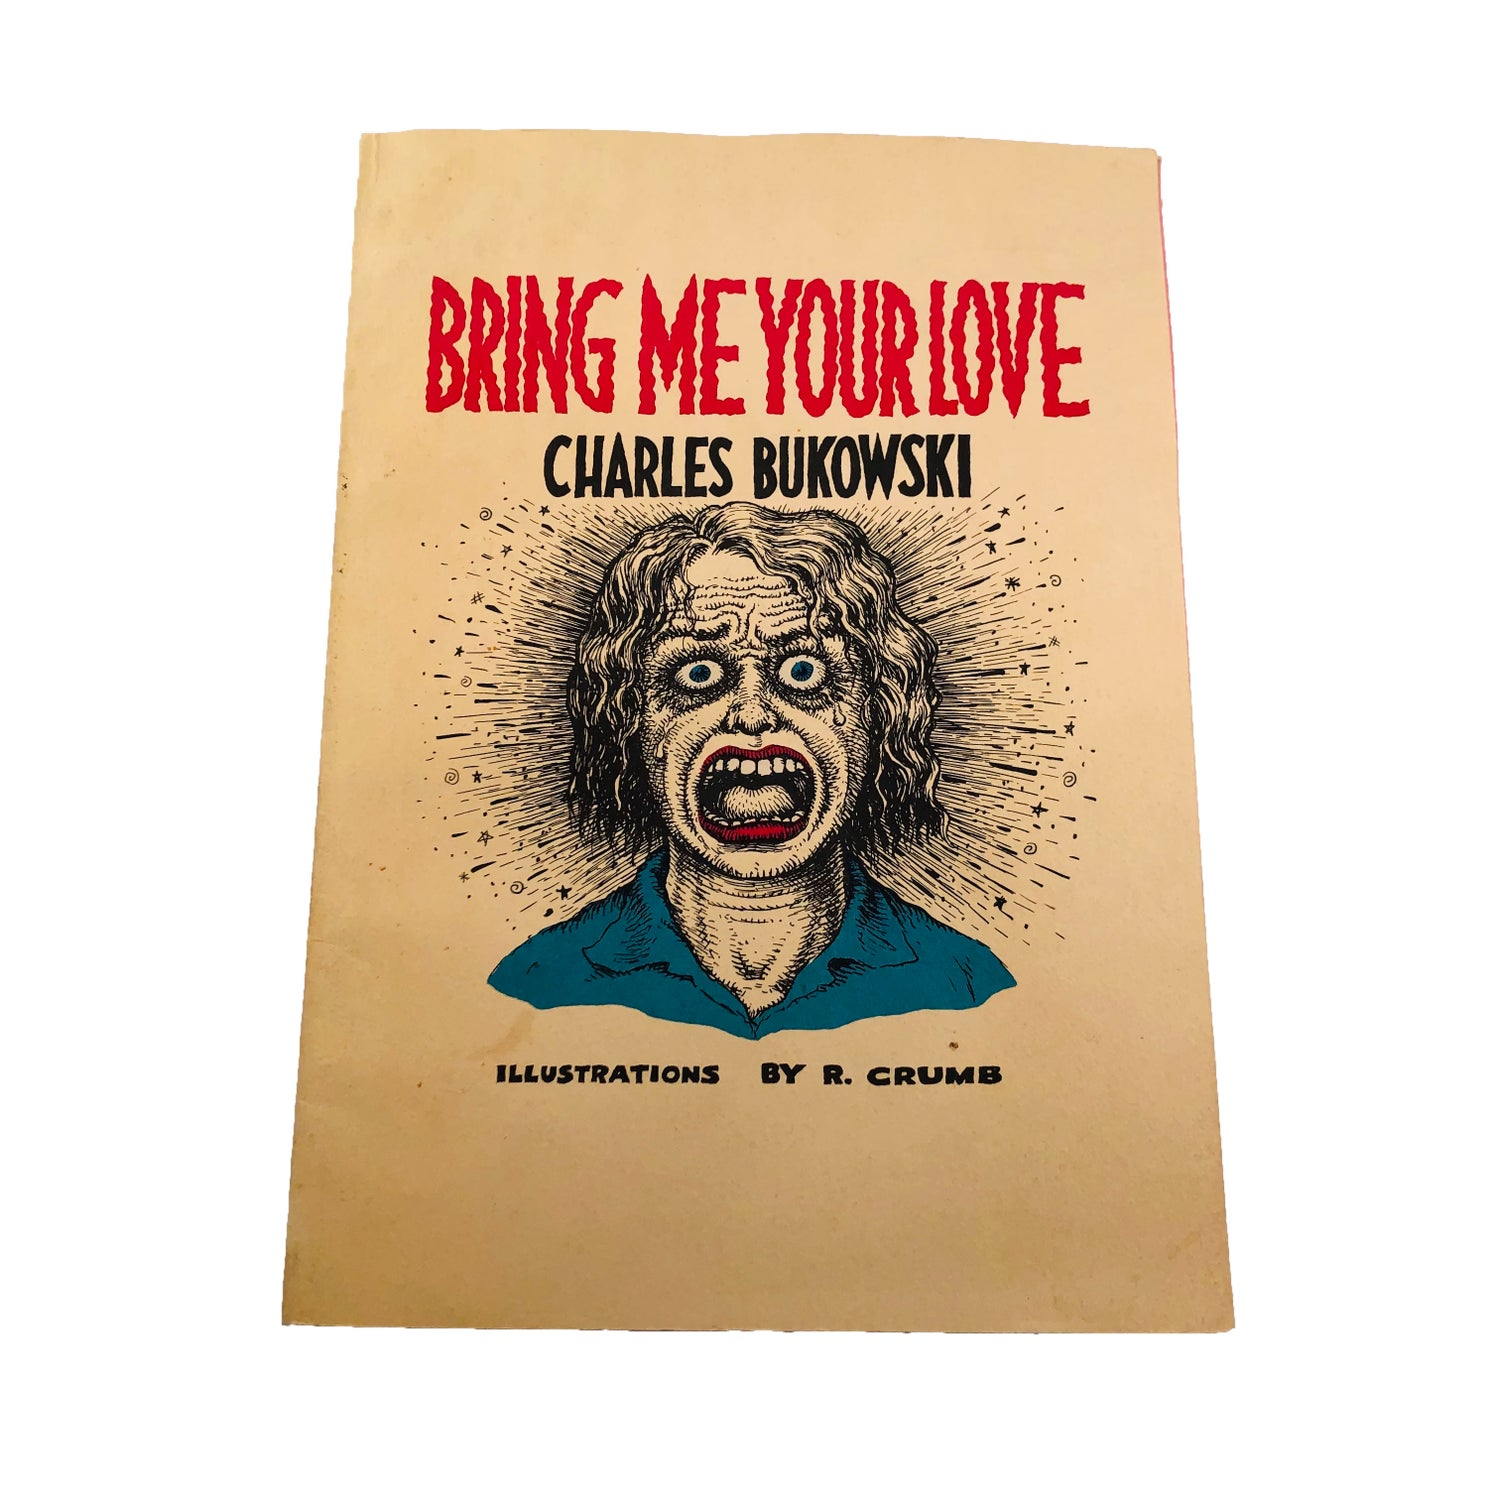 """Image of """"Bring Me Your Love"""" by Charles Bukowski (illustrations by Robert Crumb)"""